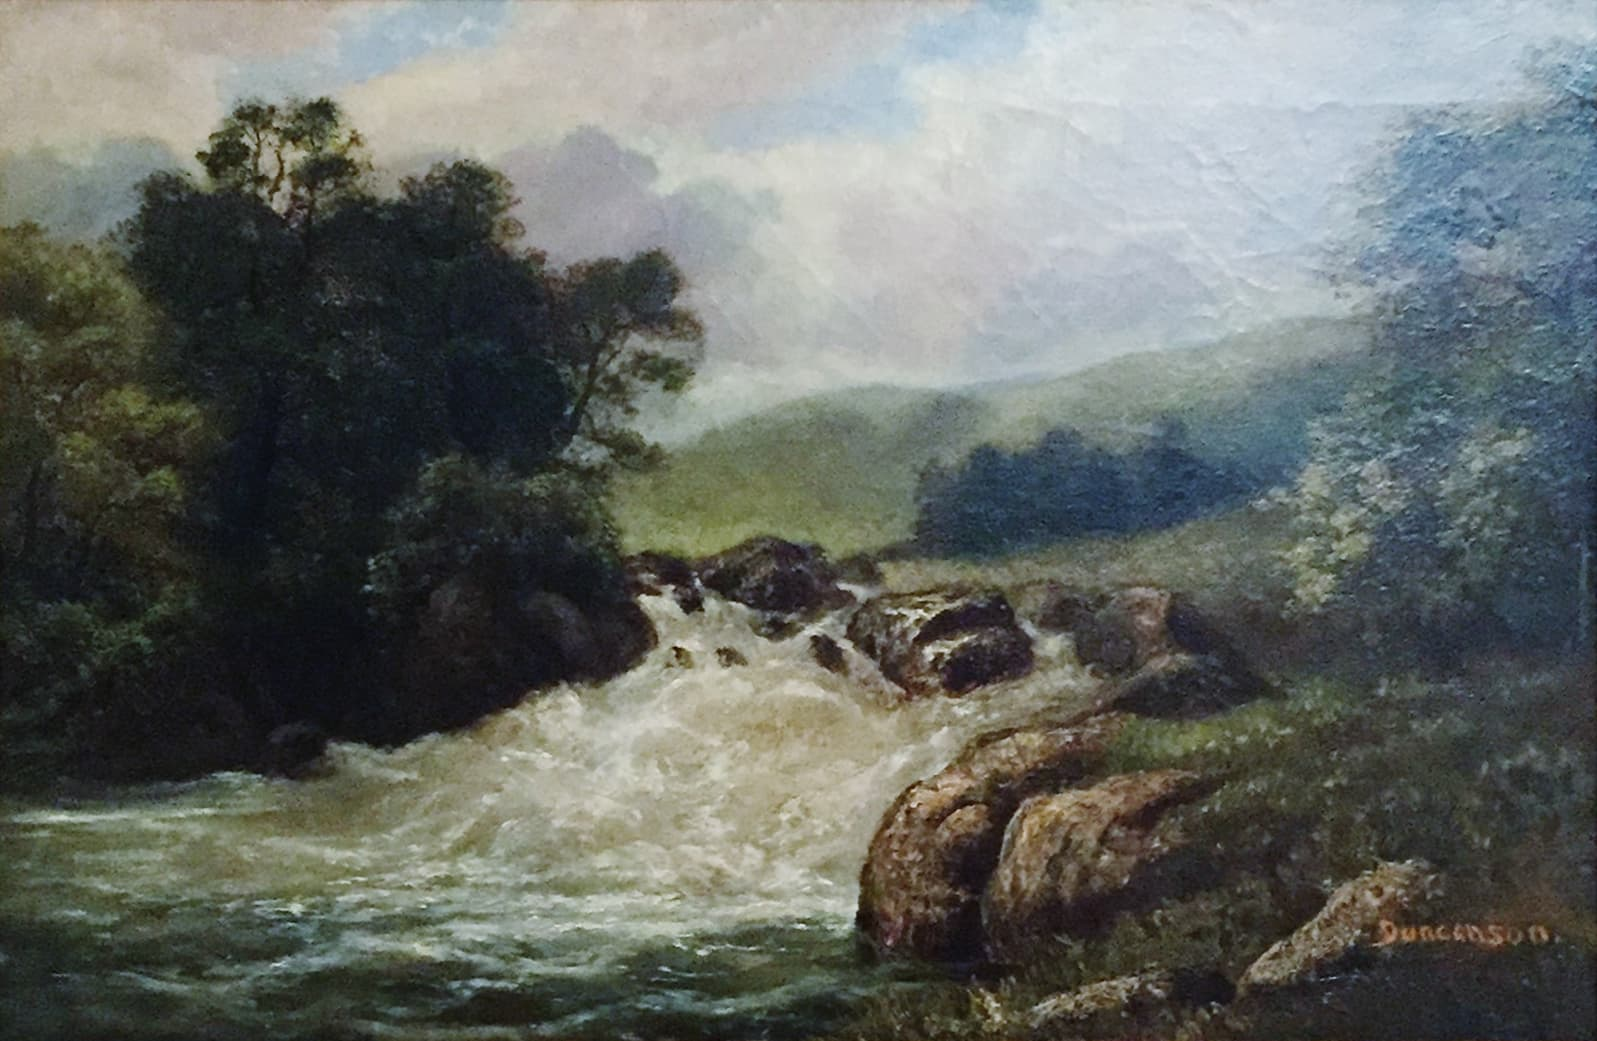 Robert Scott Duncanson, Untitled (Trees with Rushing River), c. 1864